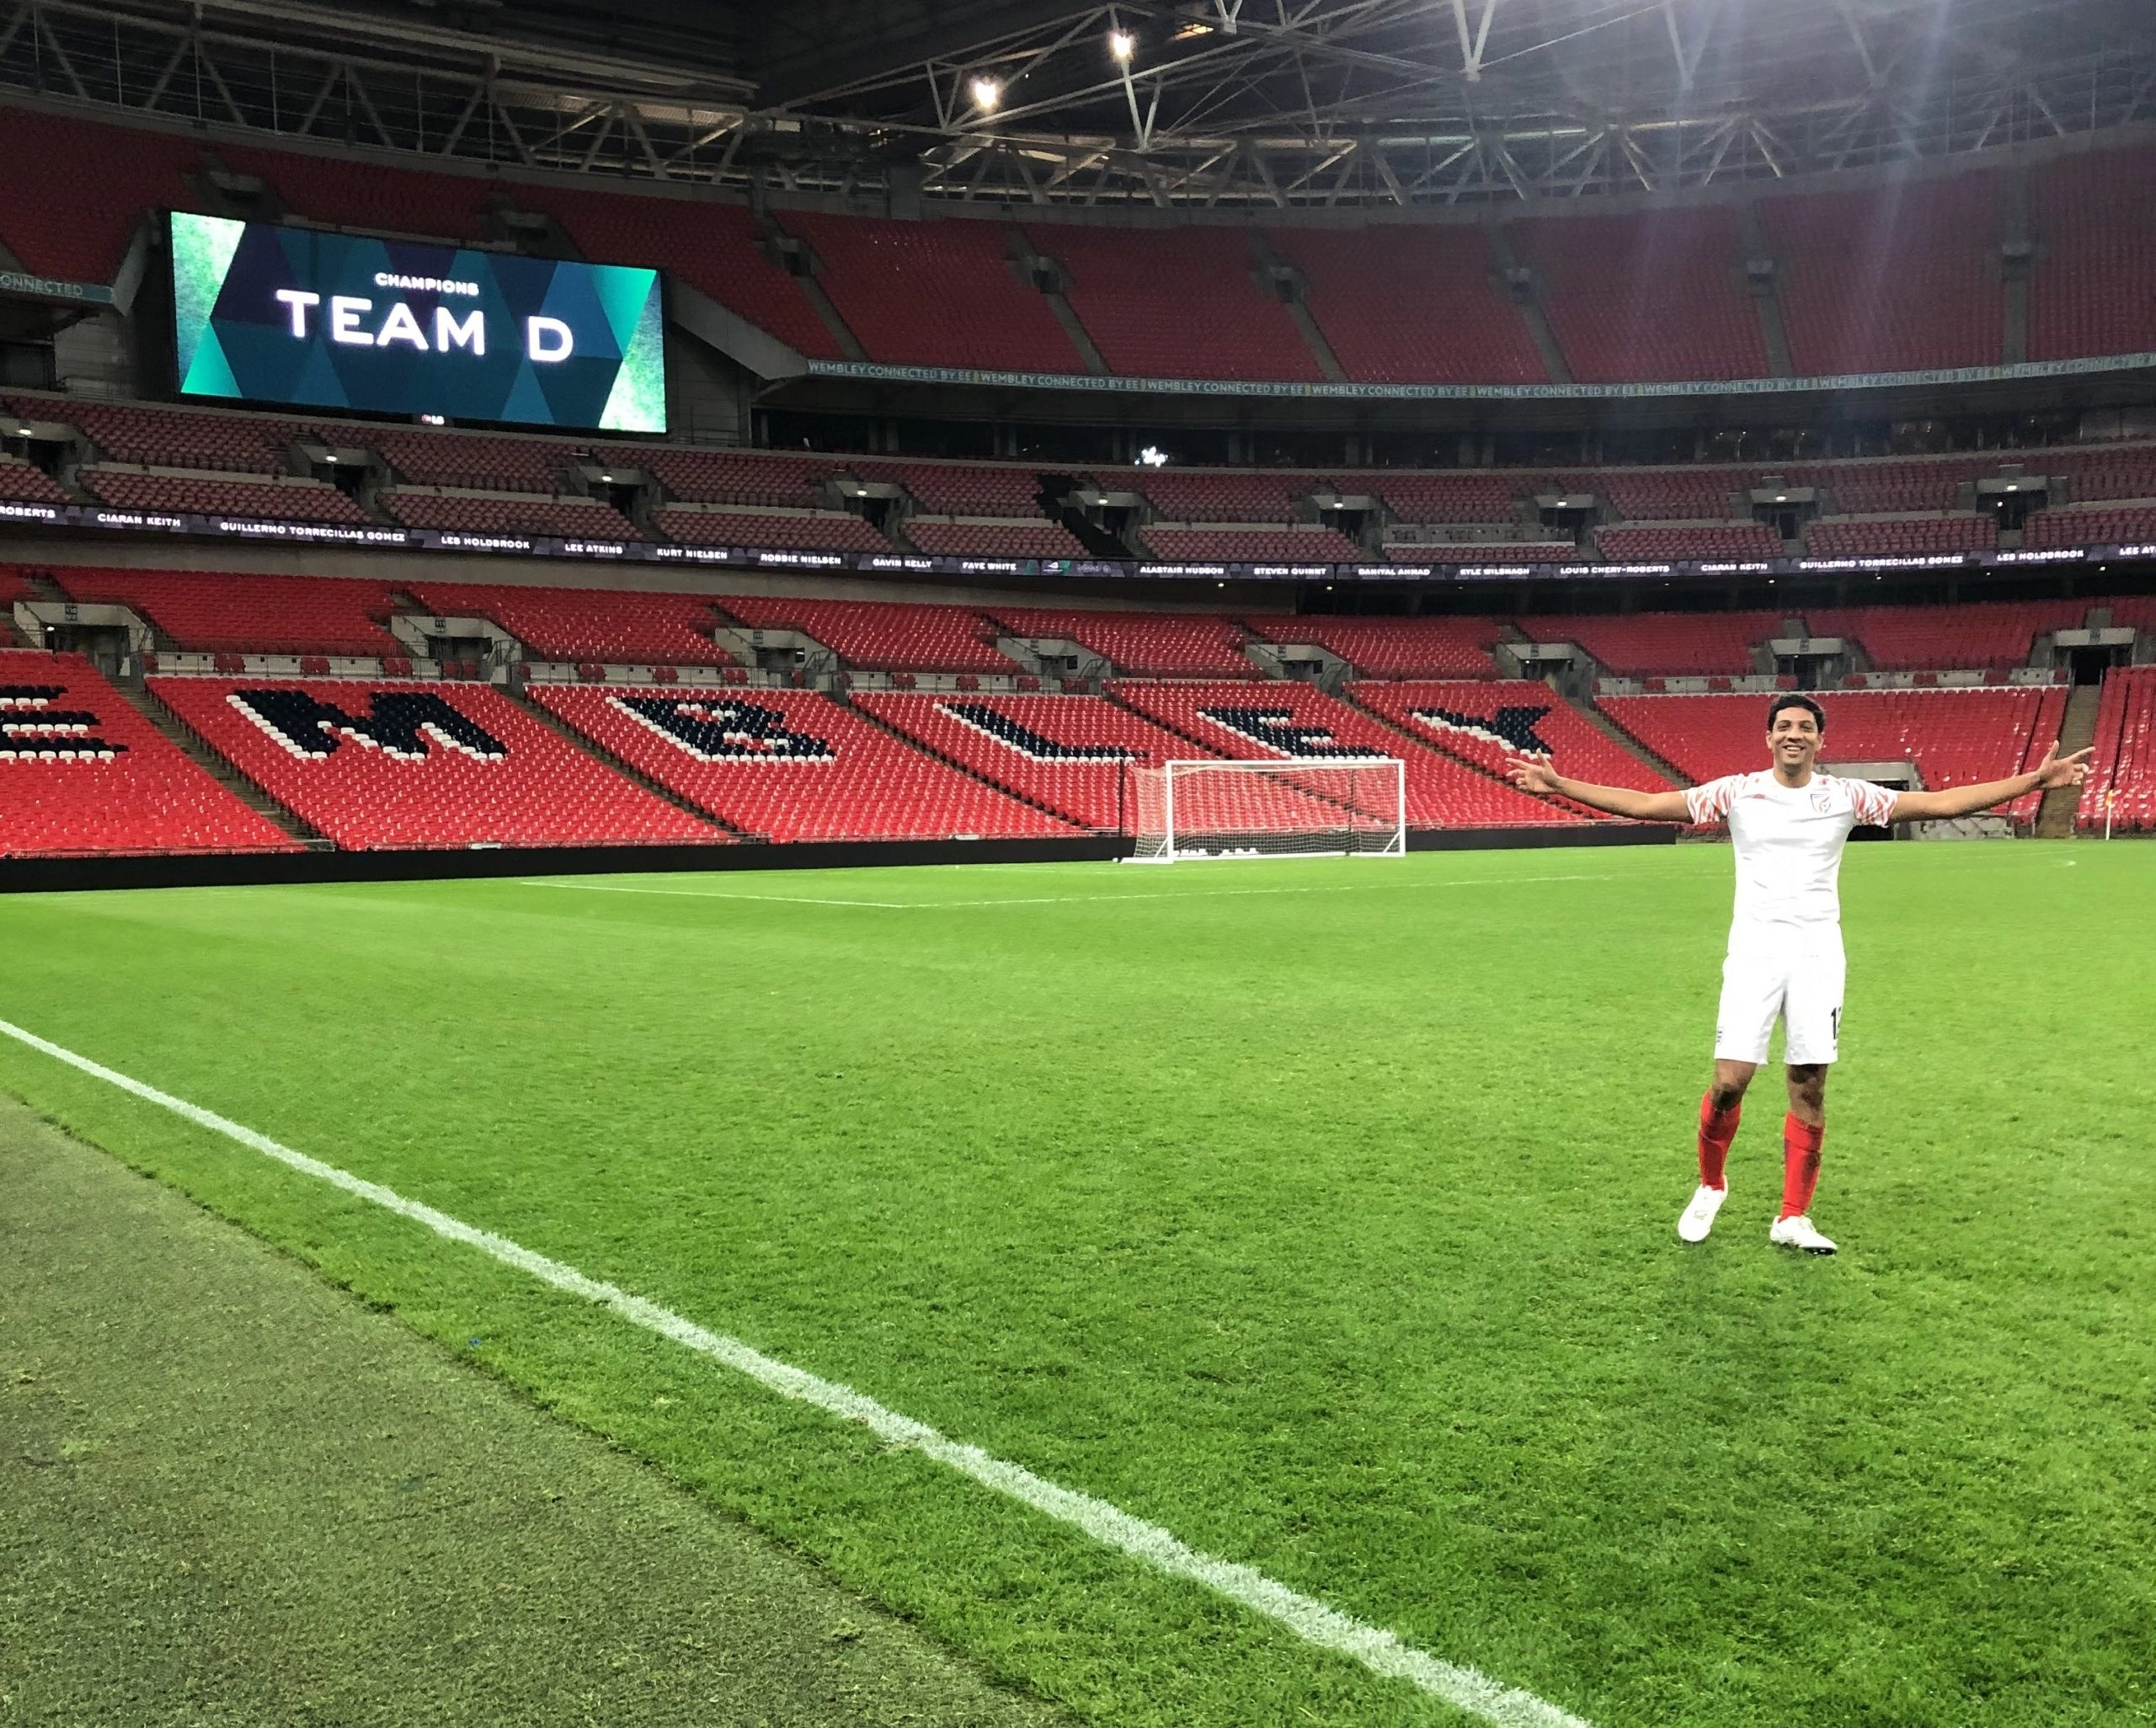 Jayvik Patel | Digital Content Operations Manager at The FA